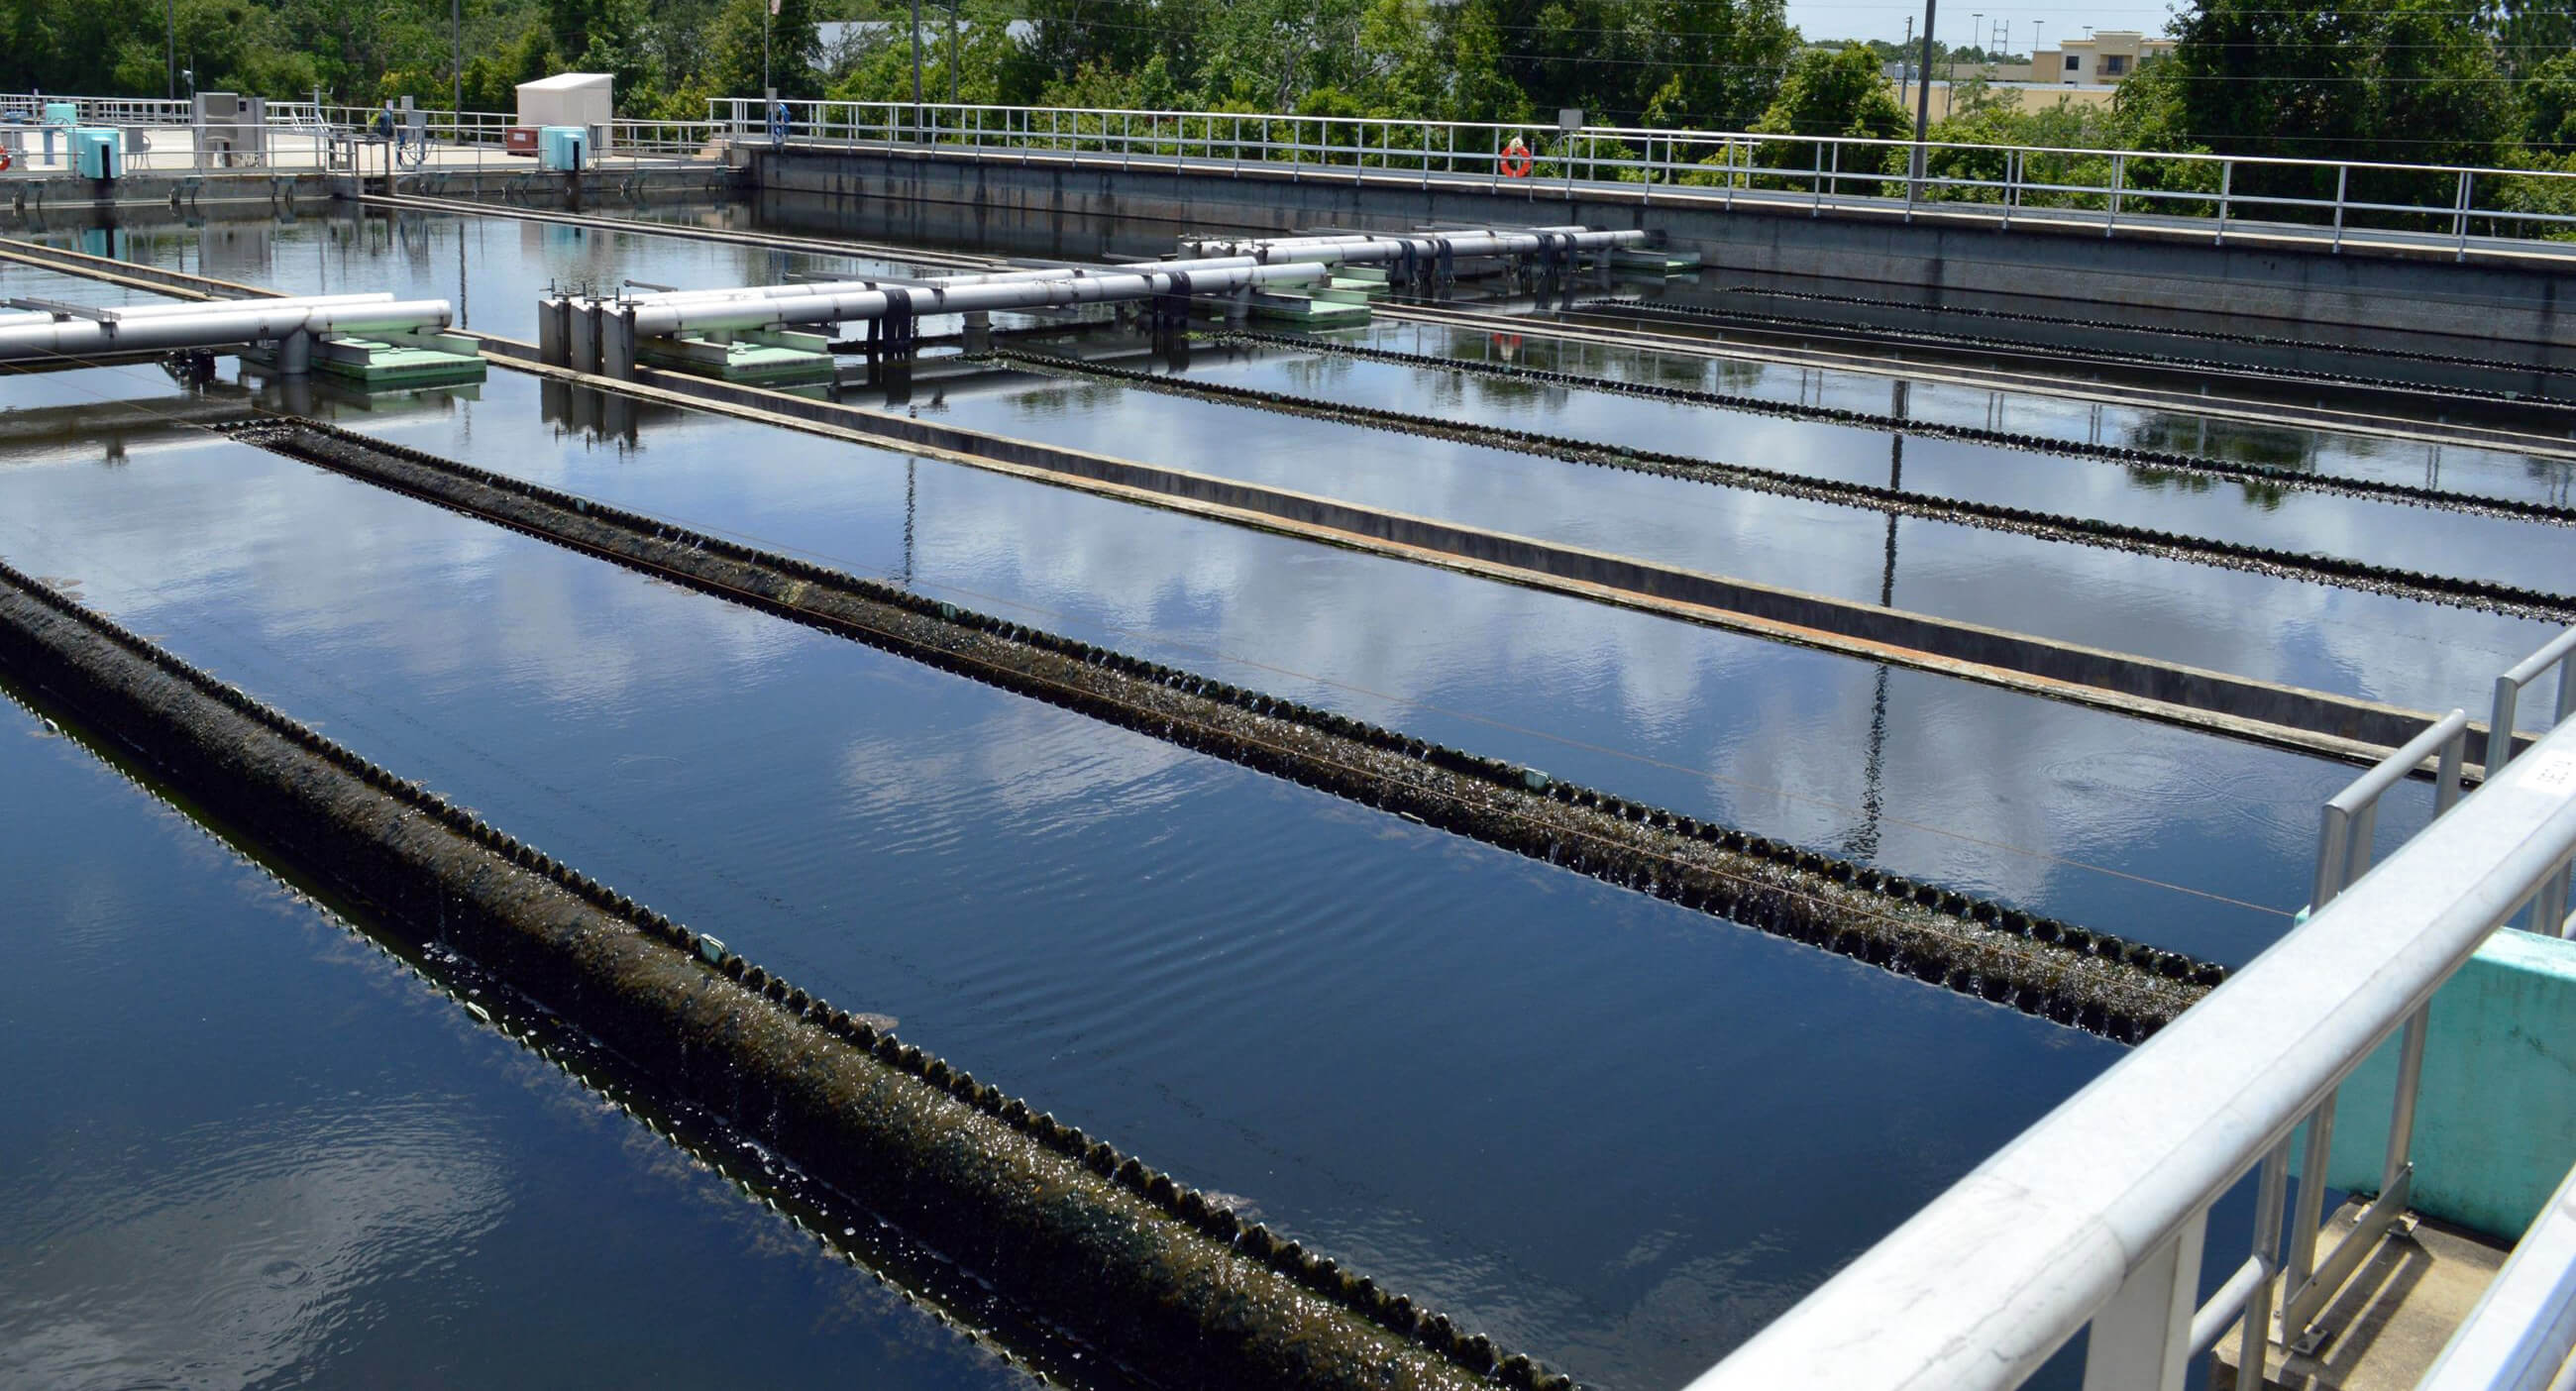 Our products have oil-less technology so we can provide the most energy-efficient, clean air for industrial and municipal wastewater treatment applications.